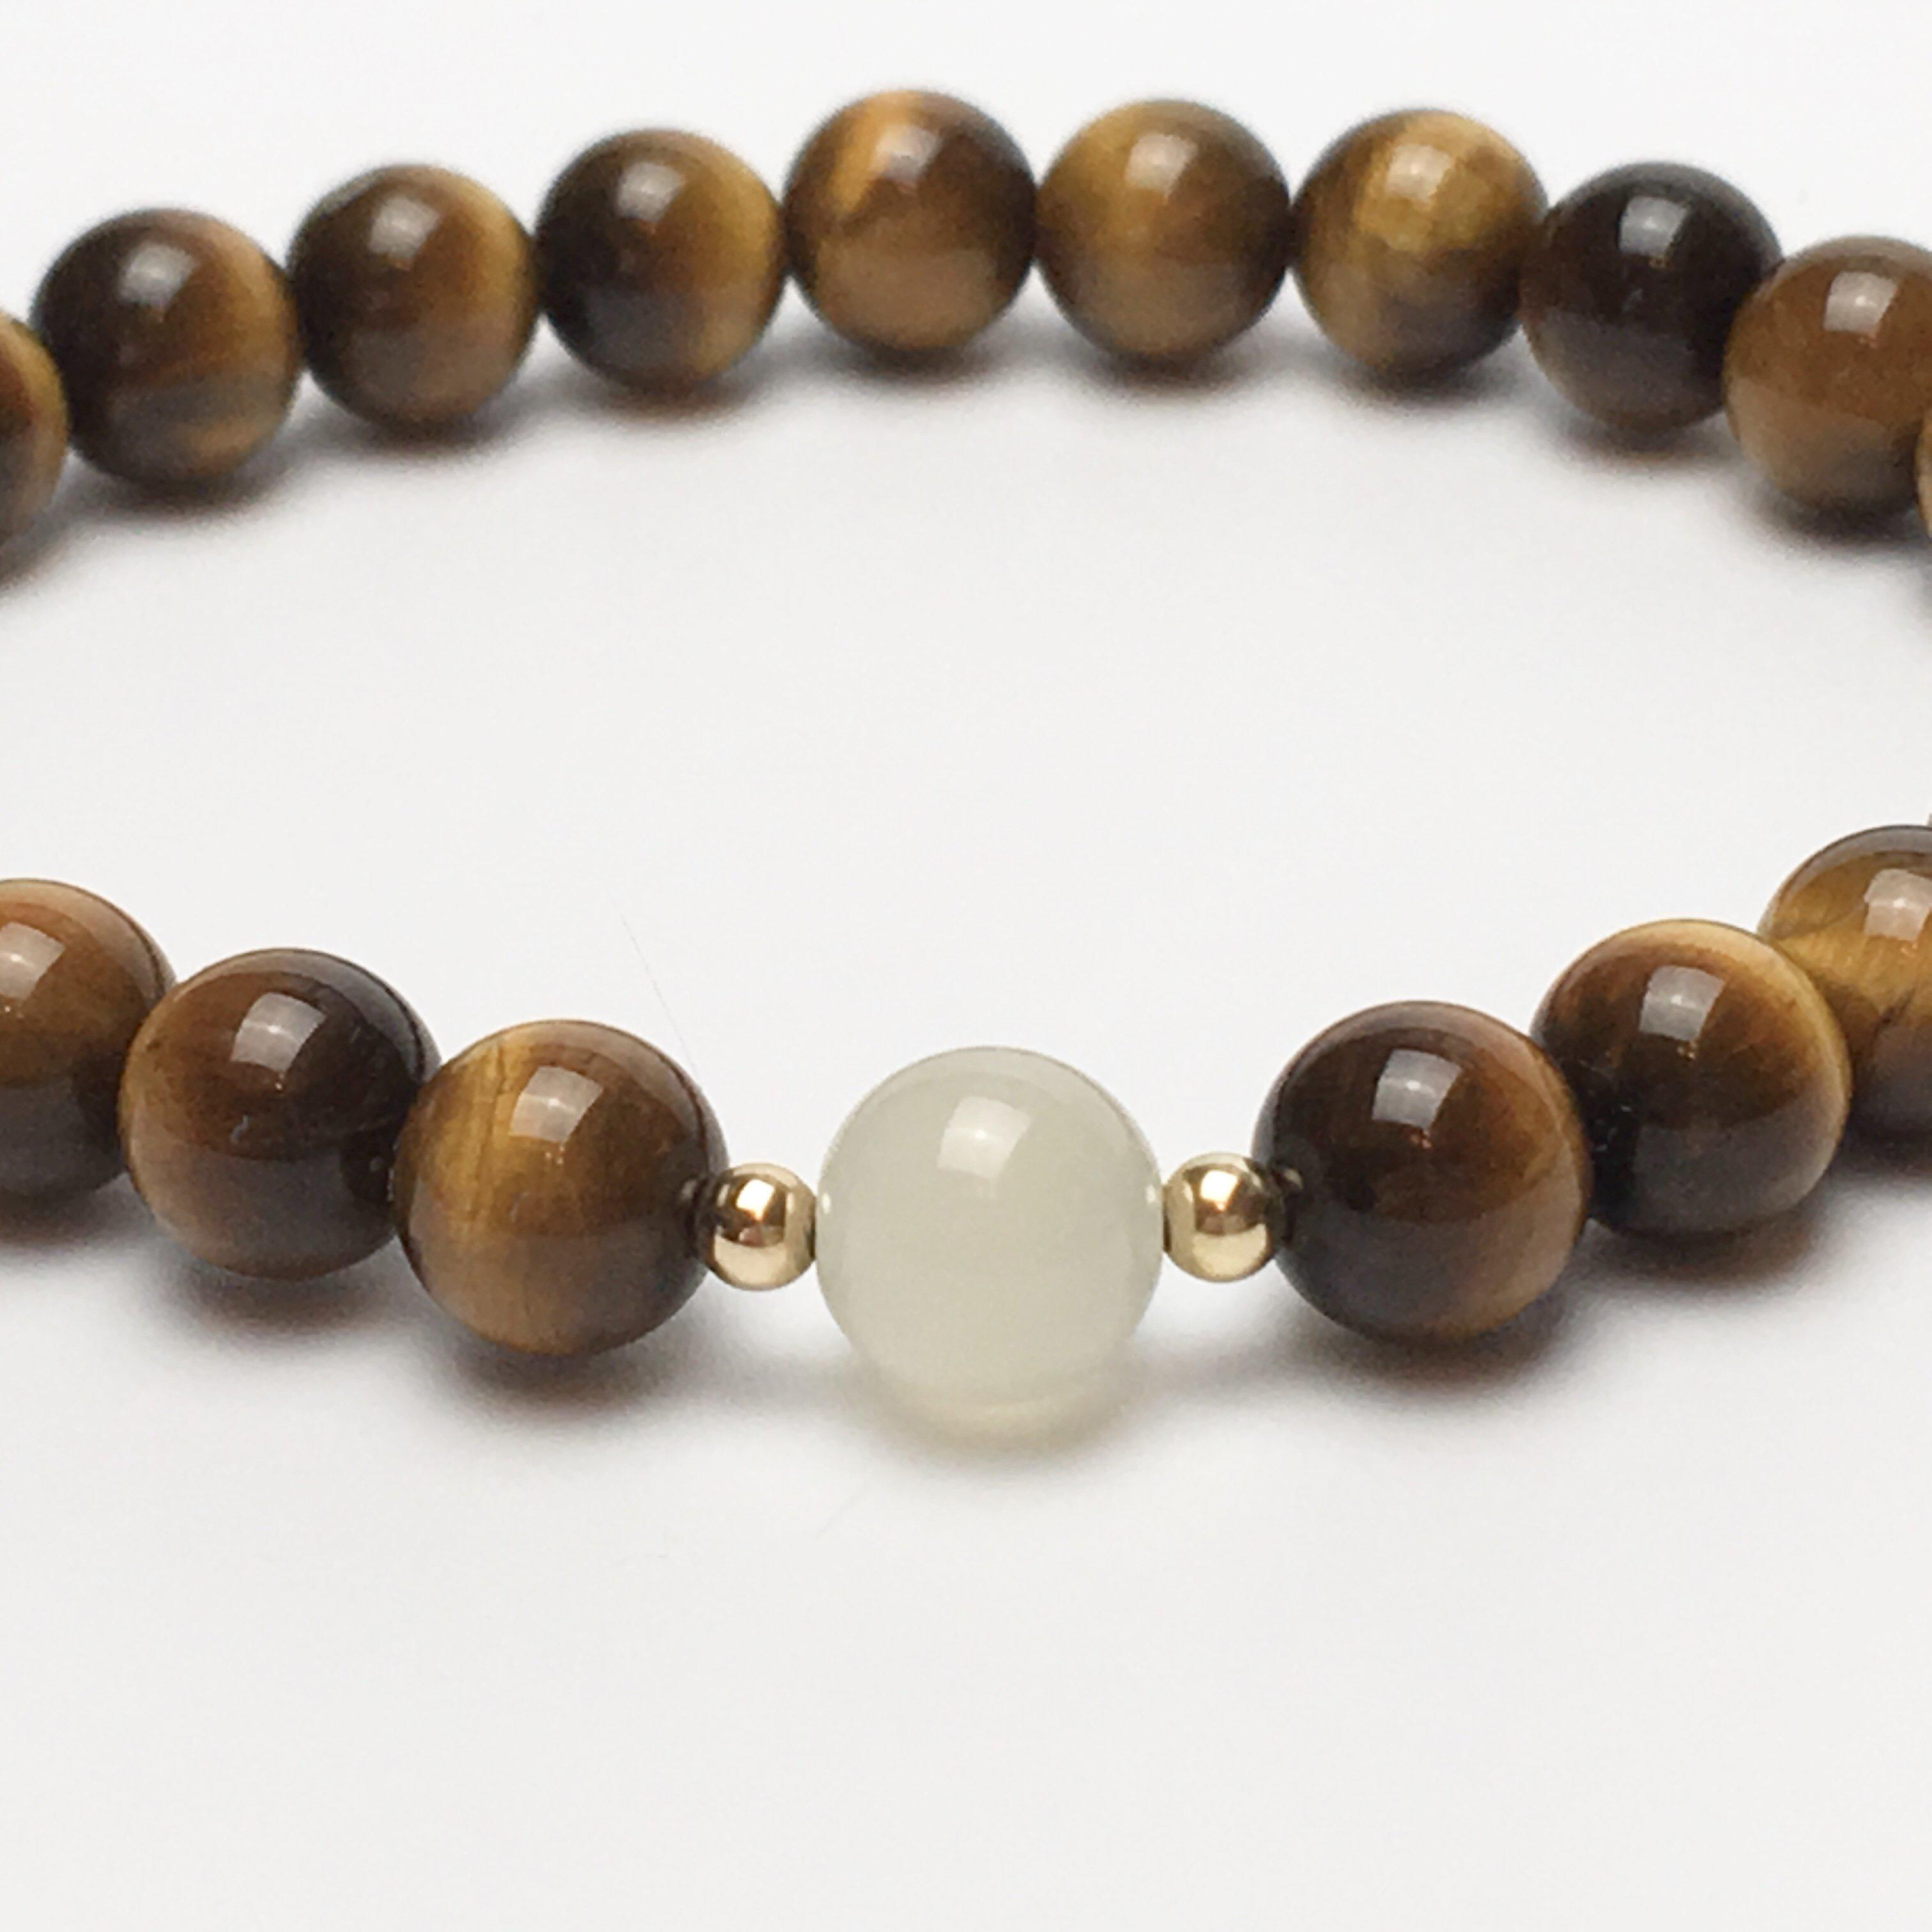 Grade A Tigers Eye and Moonstone with 9ct Gold.